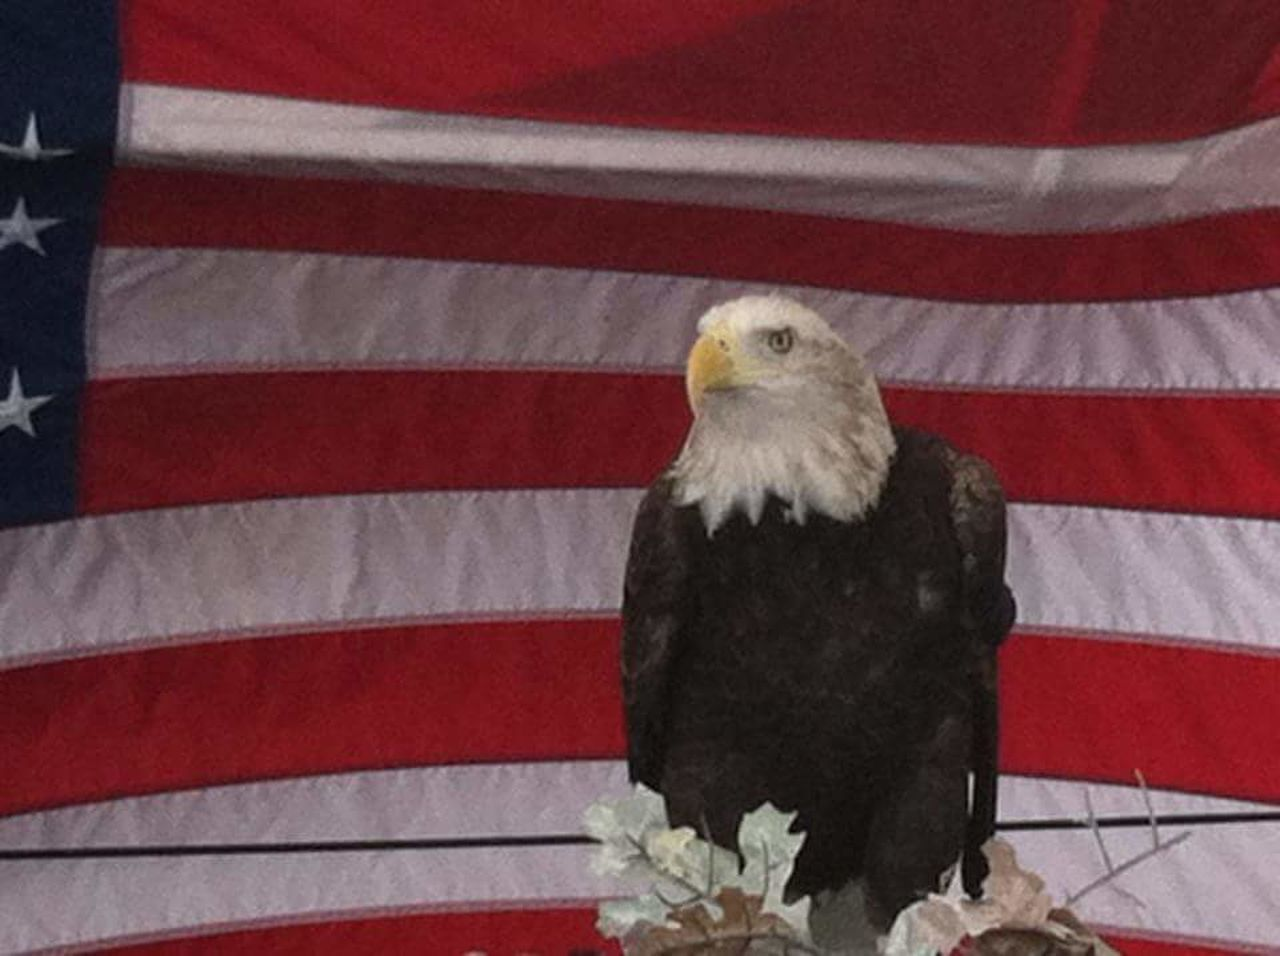 patriotism, bird, flag, one animal, no people, animal themes, close-up, outdoors, day, bald eagle, domestic animals